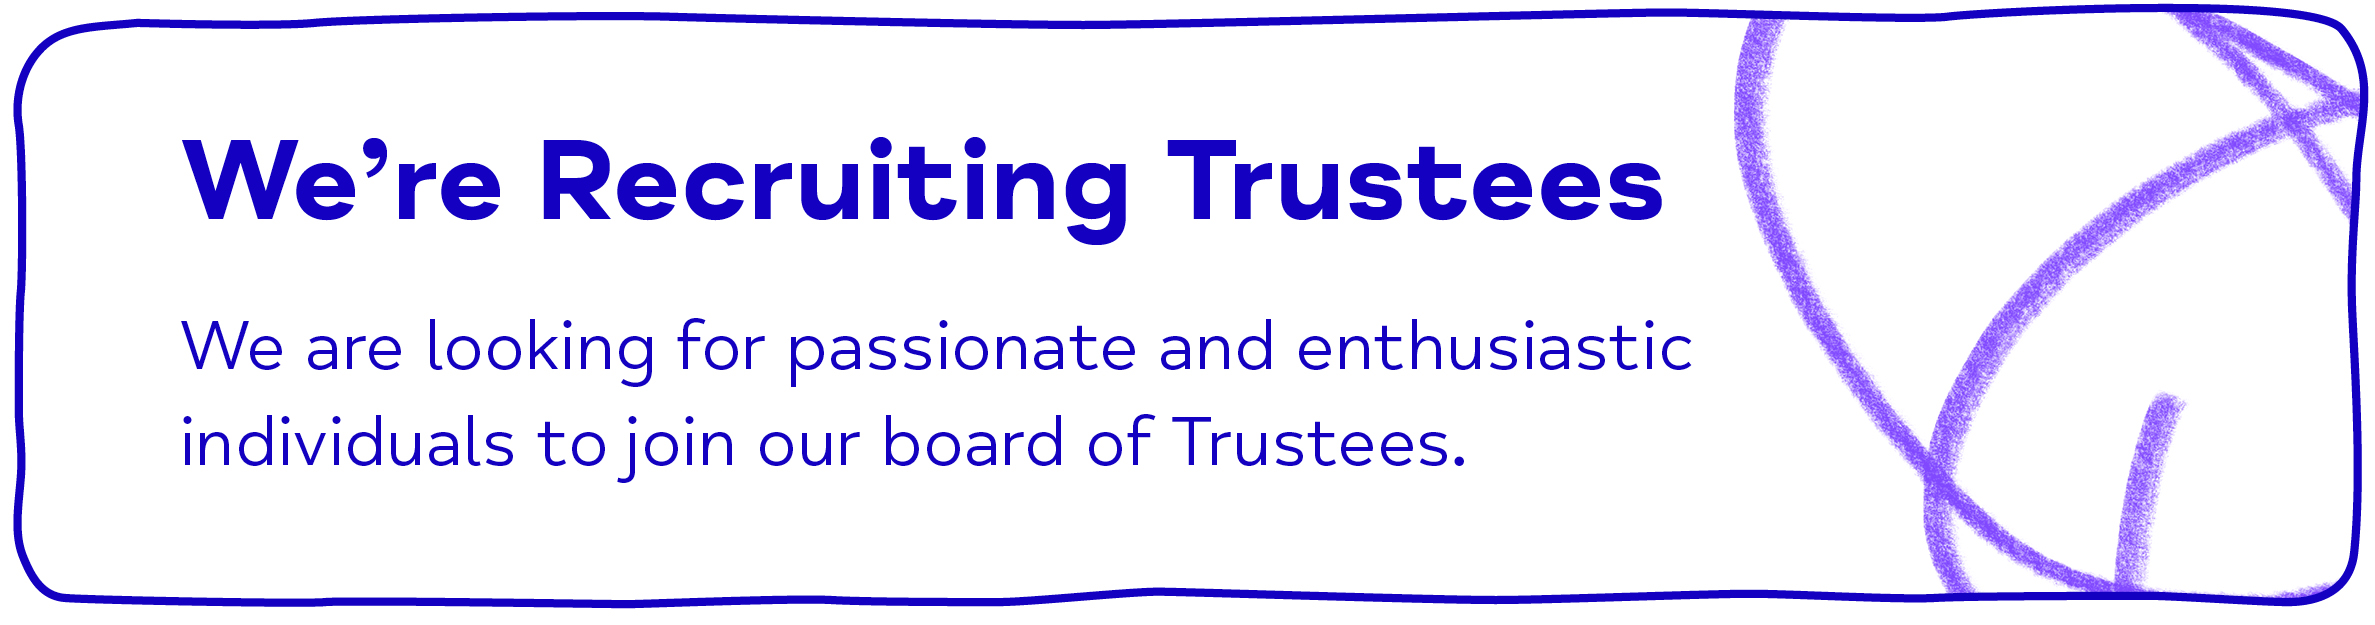 We're Recruiting Trustees We are looking for passionate and enthusiastic individuals to join our board of Trustees.